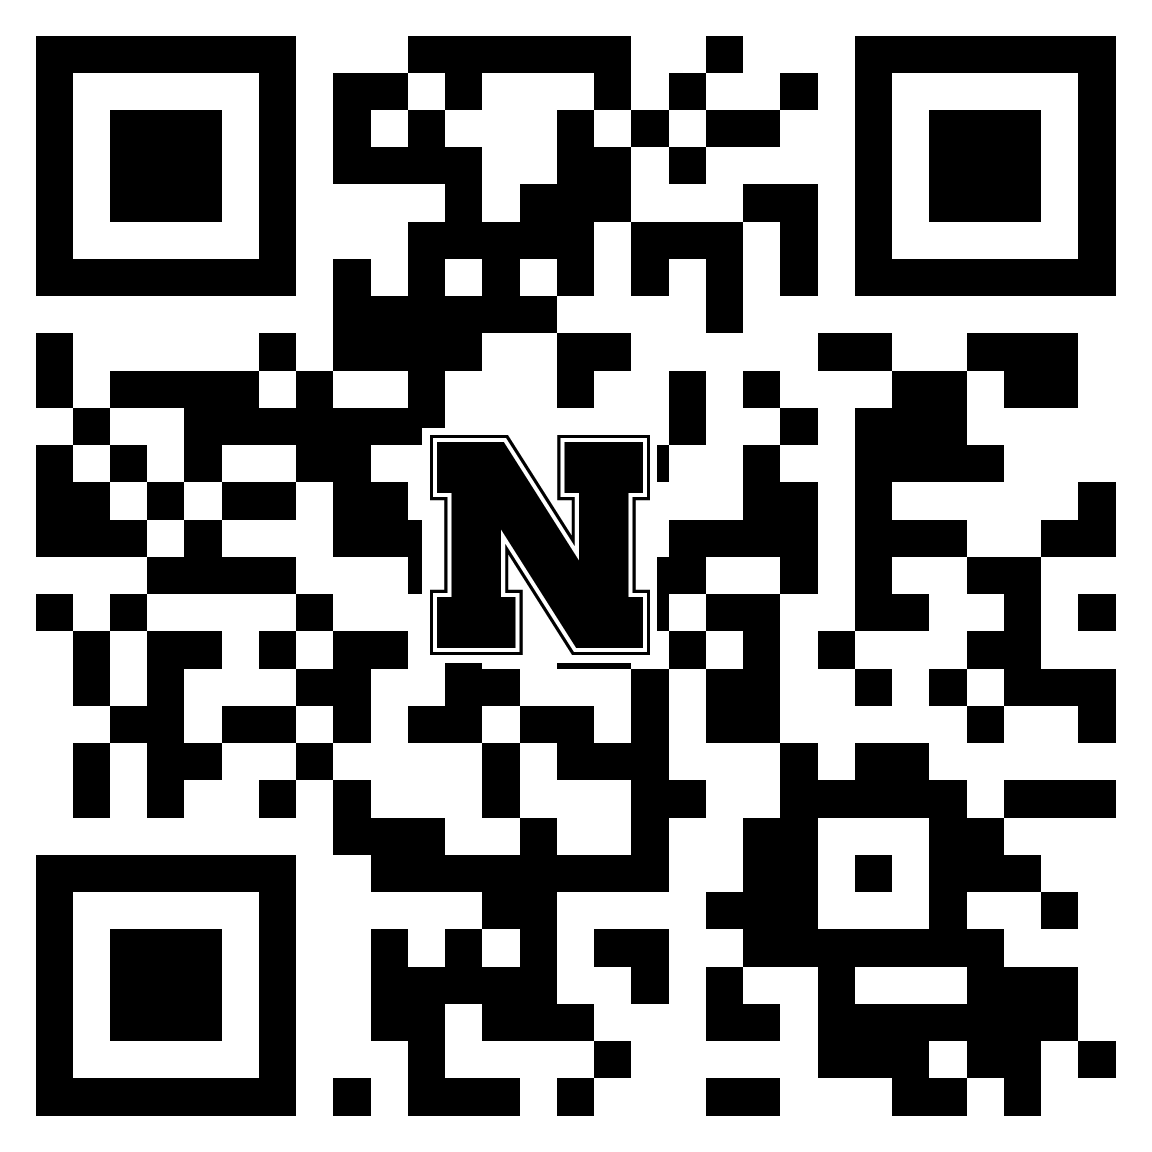 QR Code for your Go URL